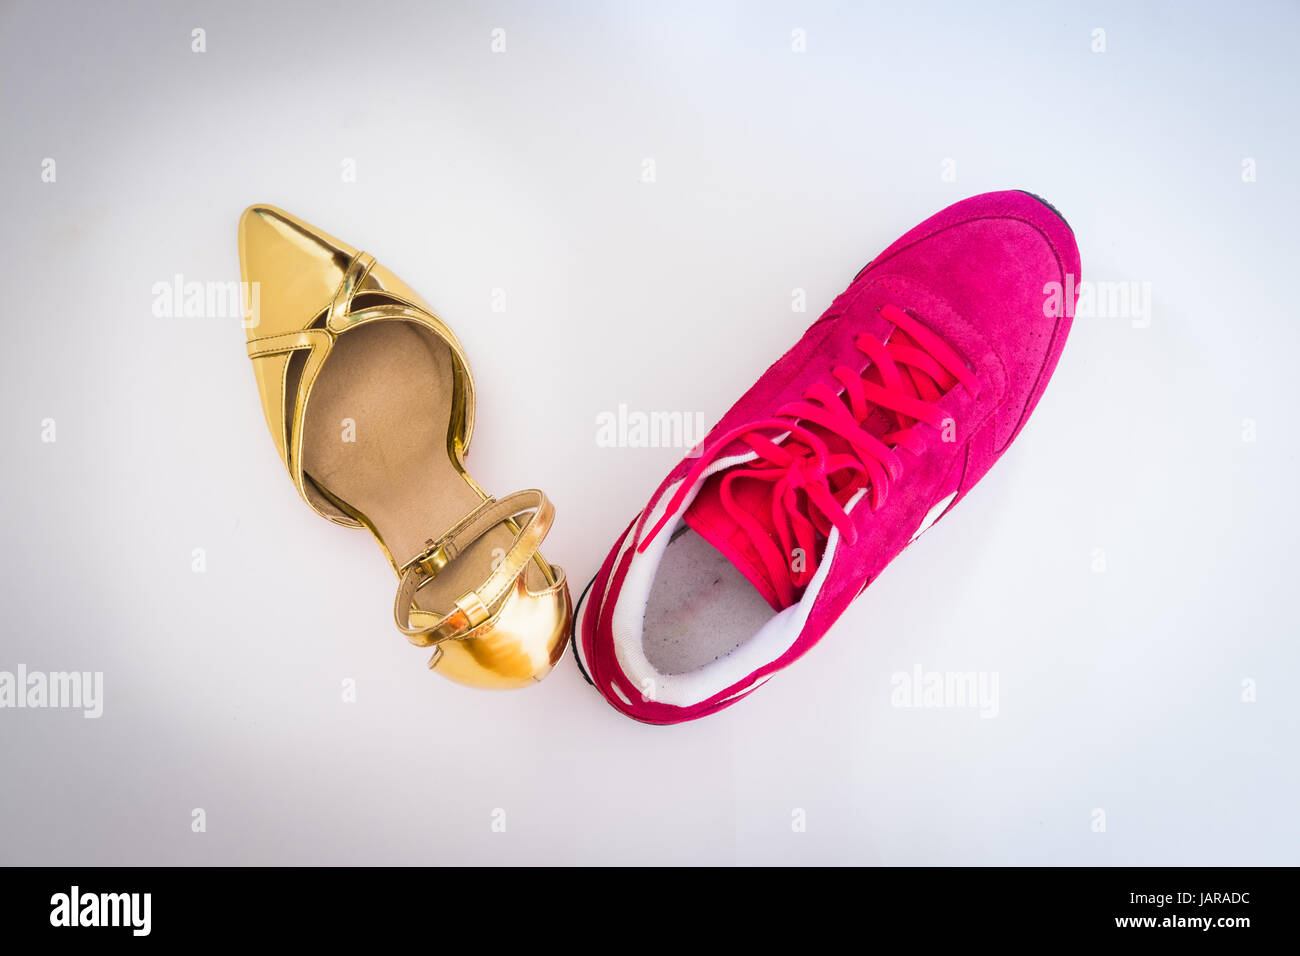 Gold and pink shoes - Stock Image